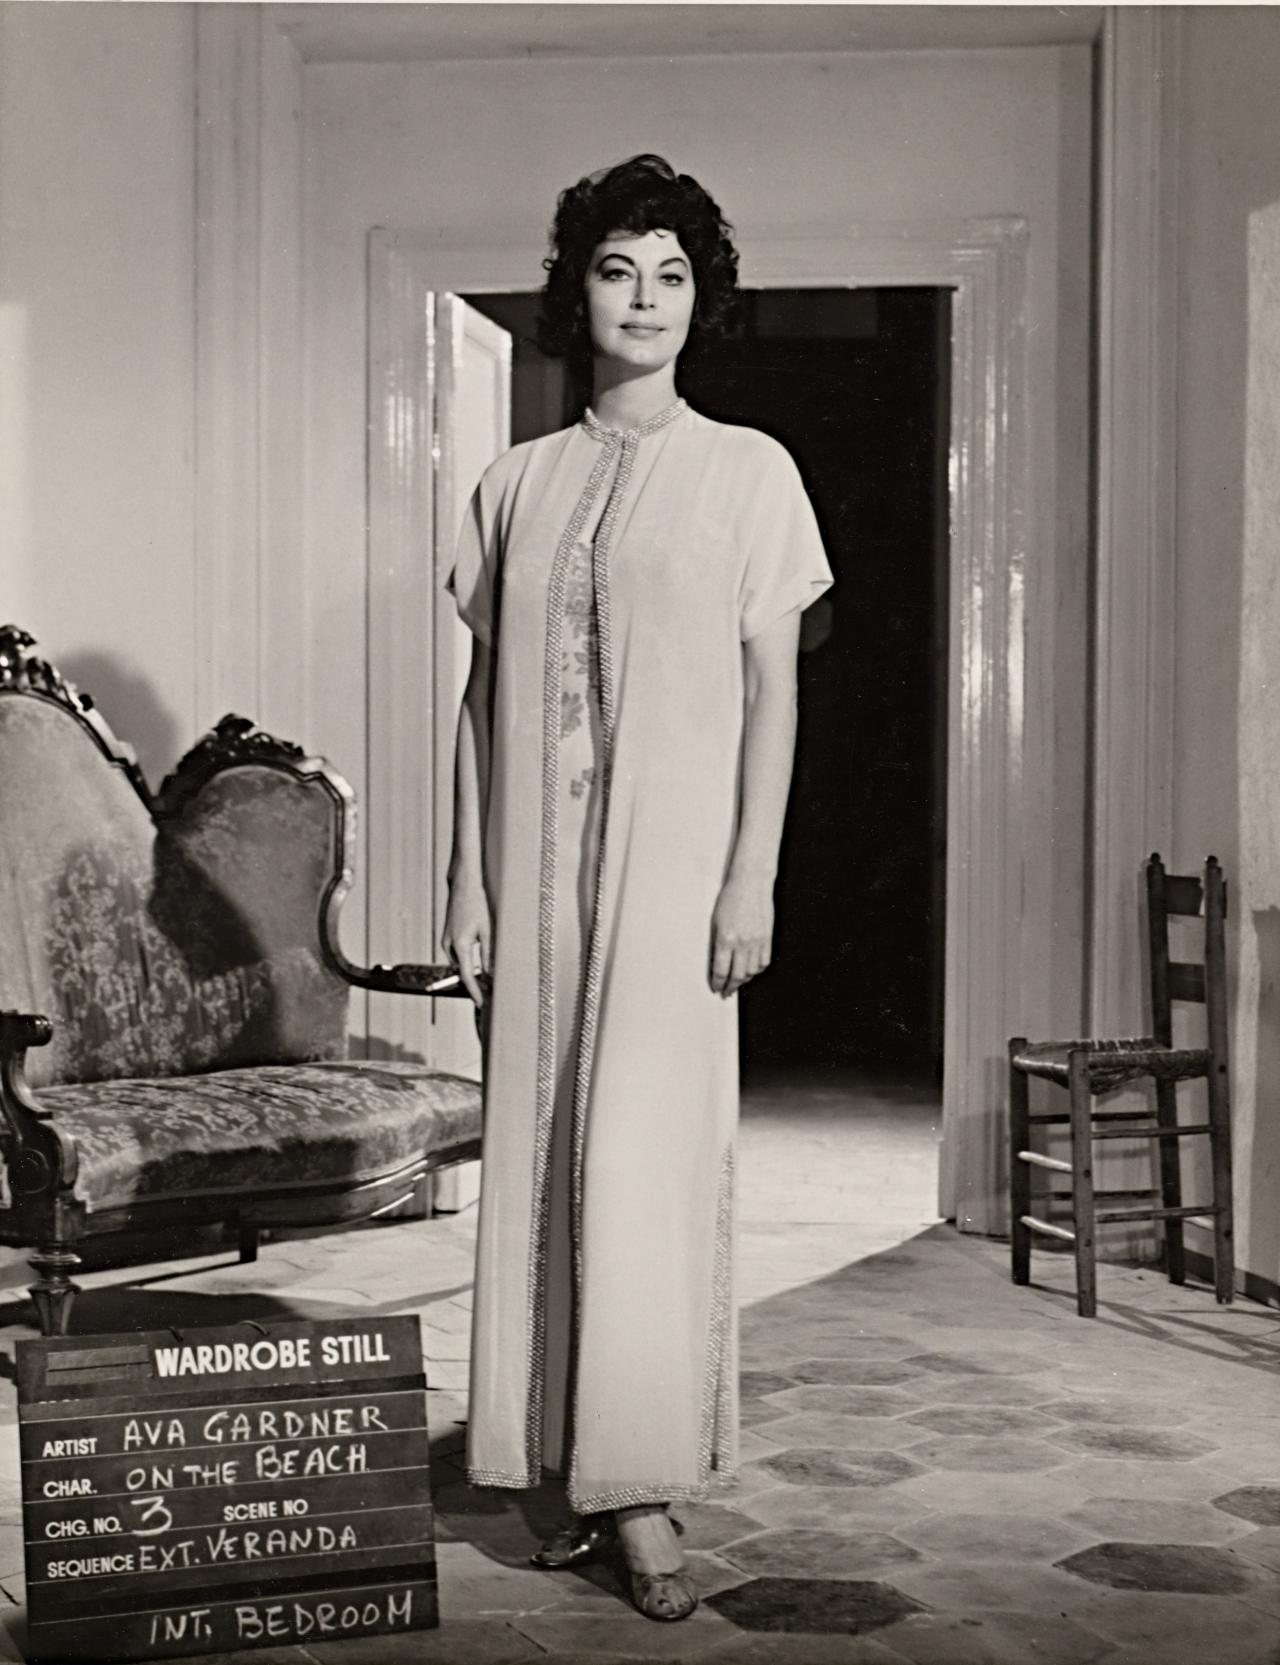 No title (Ava Gardner in wardrobe still for On the beach: Verandah and bedroom)